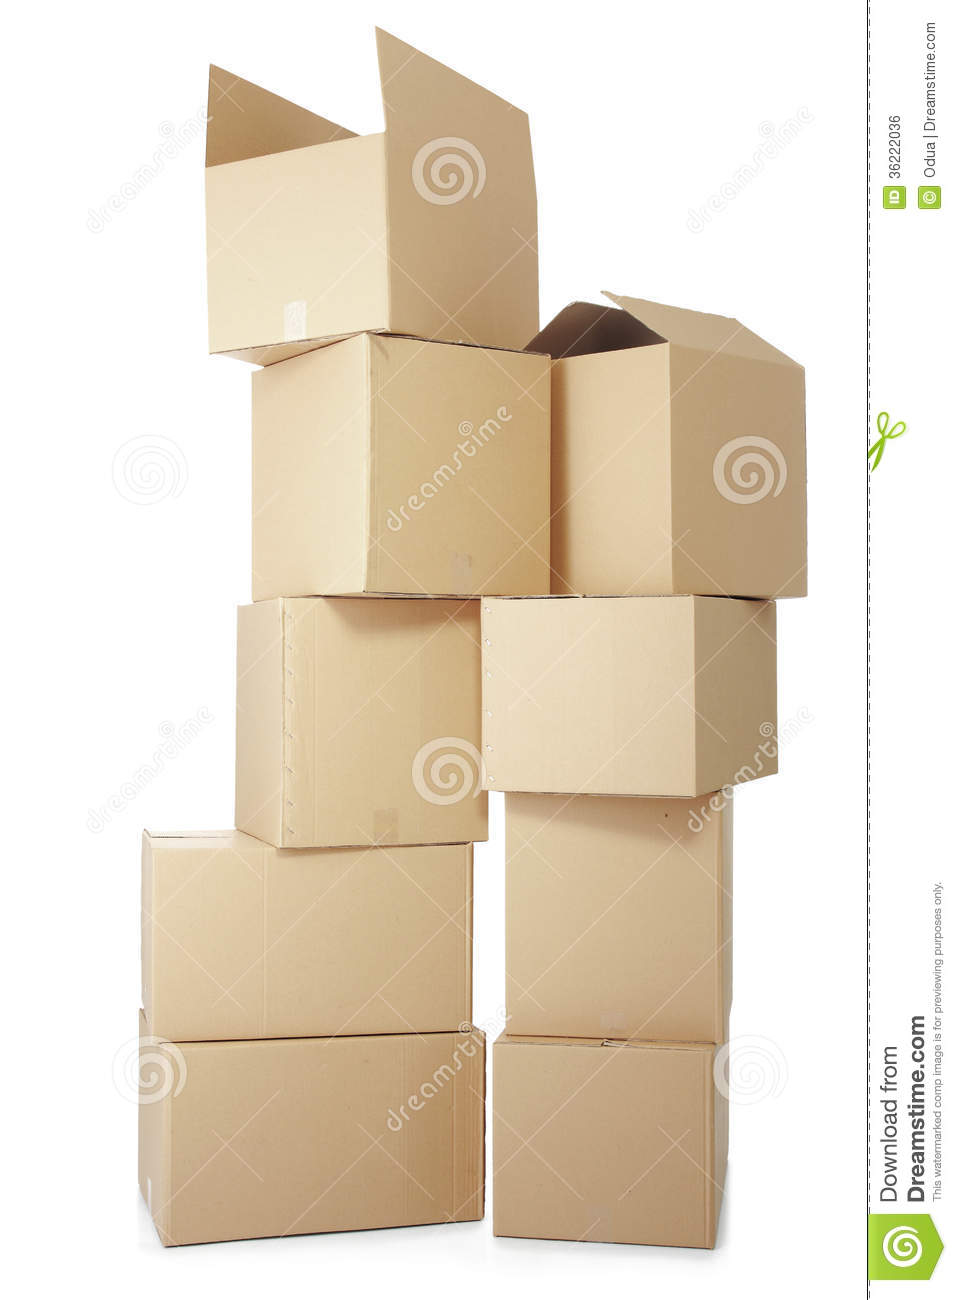 Piles of cardboard boxes royalty free stock image